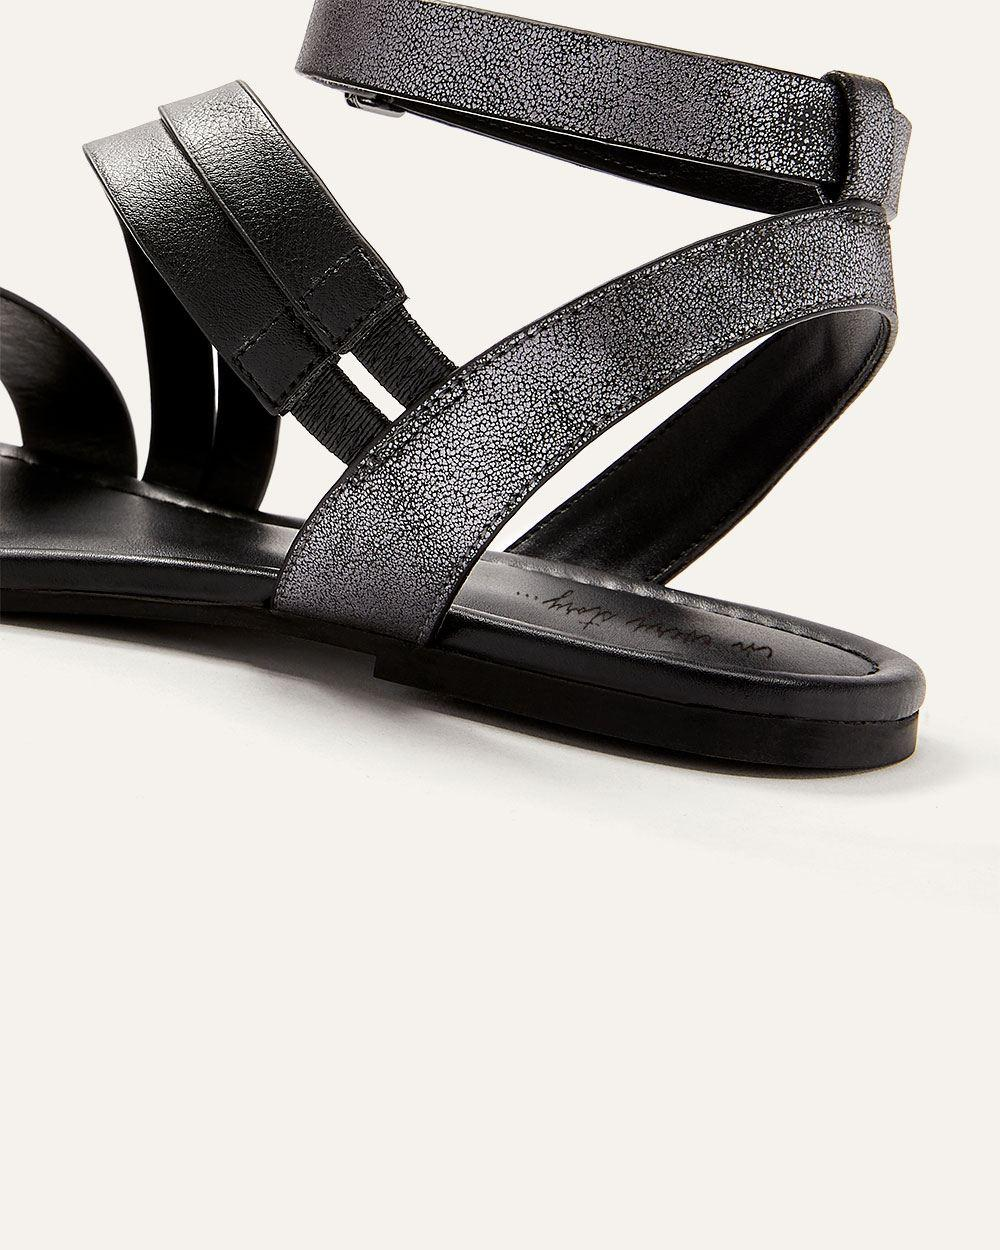 5c97eb960 Lyst - Addition Elle Wide Multi-strap Asymmetrical Flat Sandals in Black